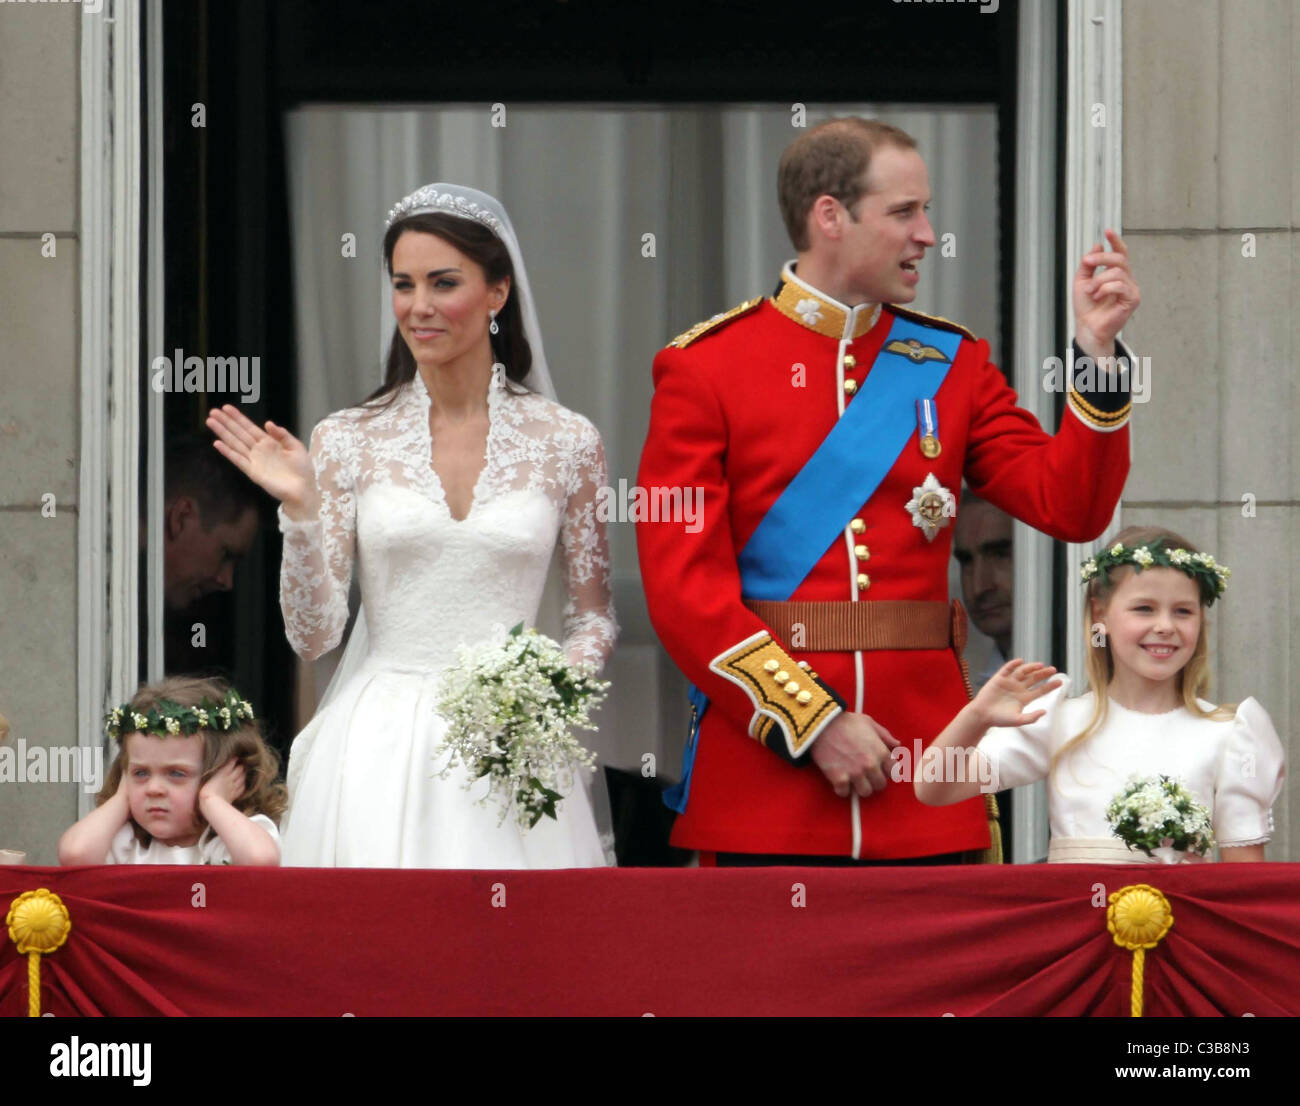 The Wedding Of Prince William And Catherine Middleton 29th